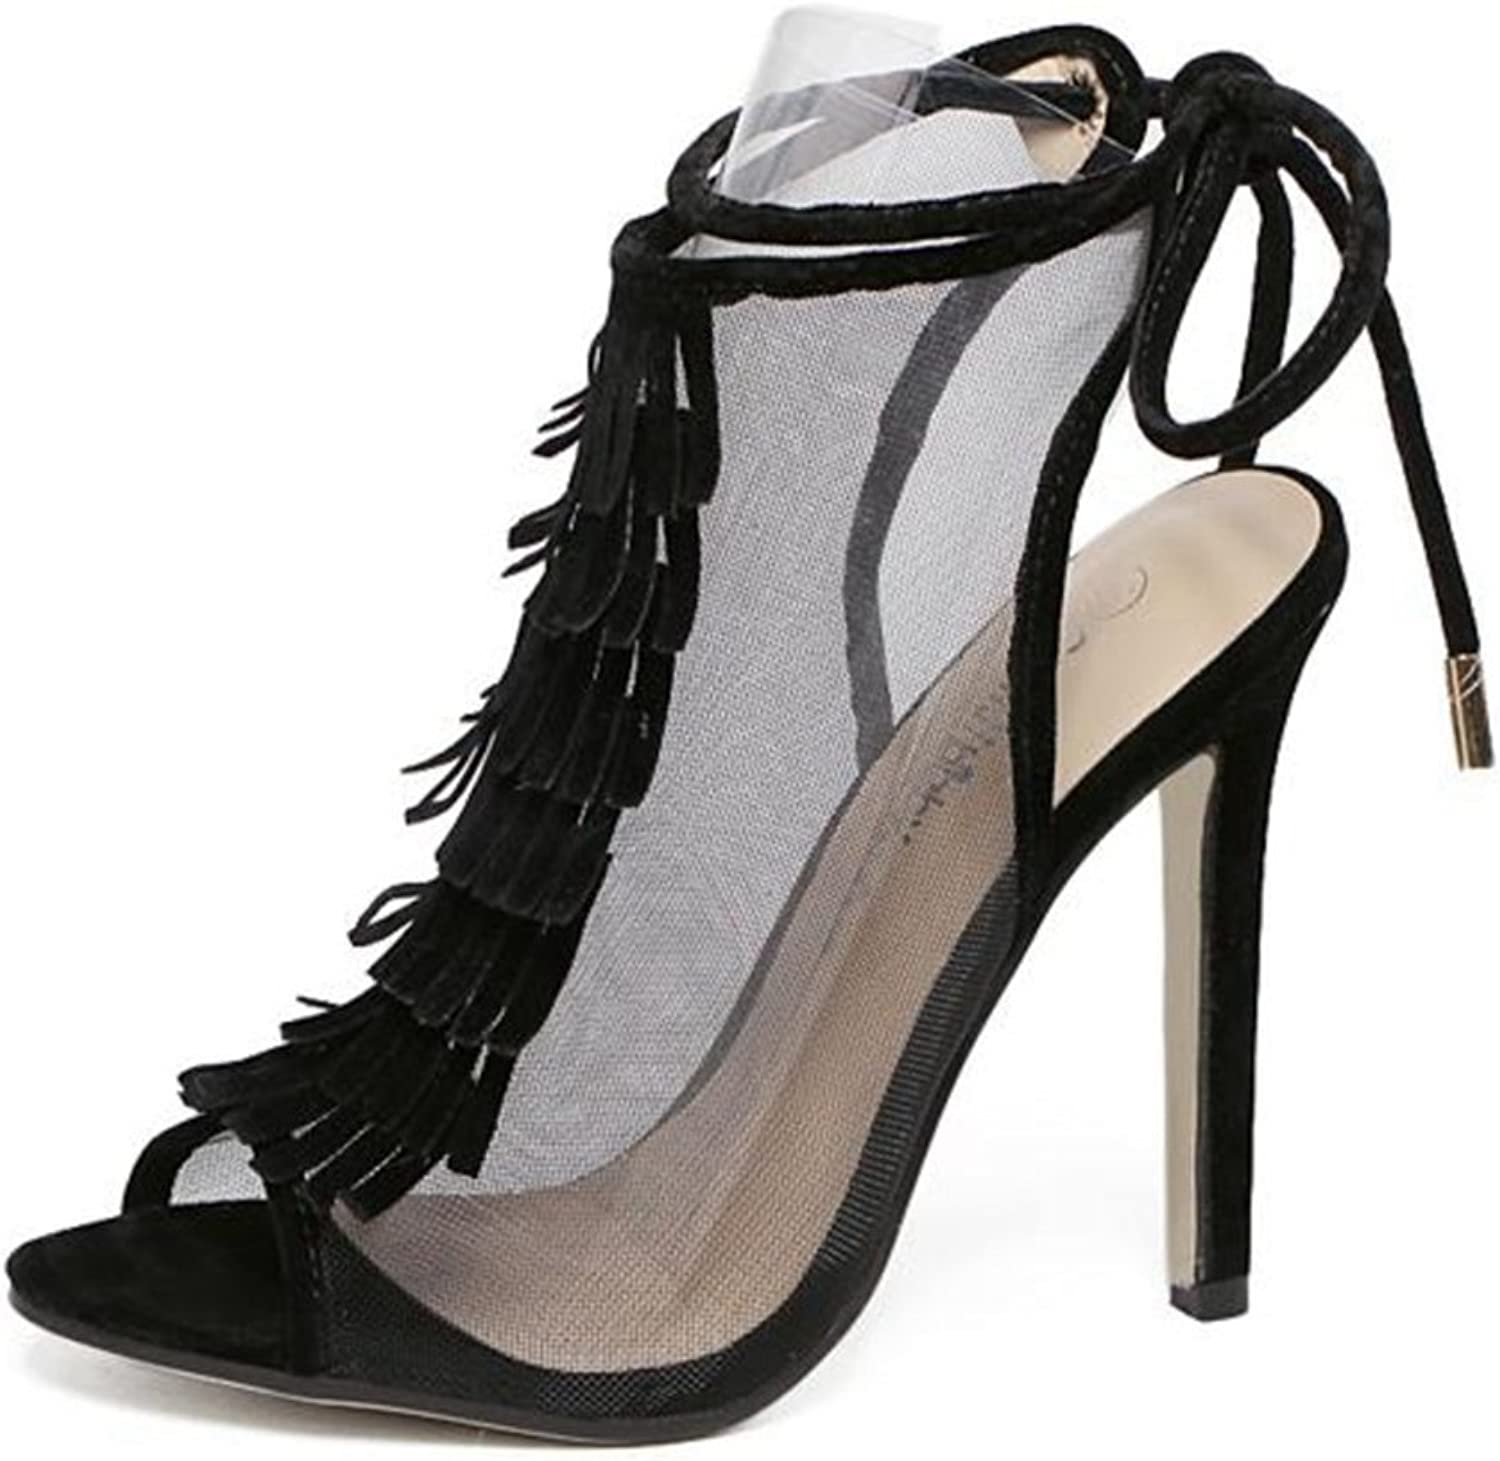 Btrada Women Mesh Hollow Pumps High Heel Tassel Sandals Fish Mouth Dress shoes Ankle Lace-up Stiletto